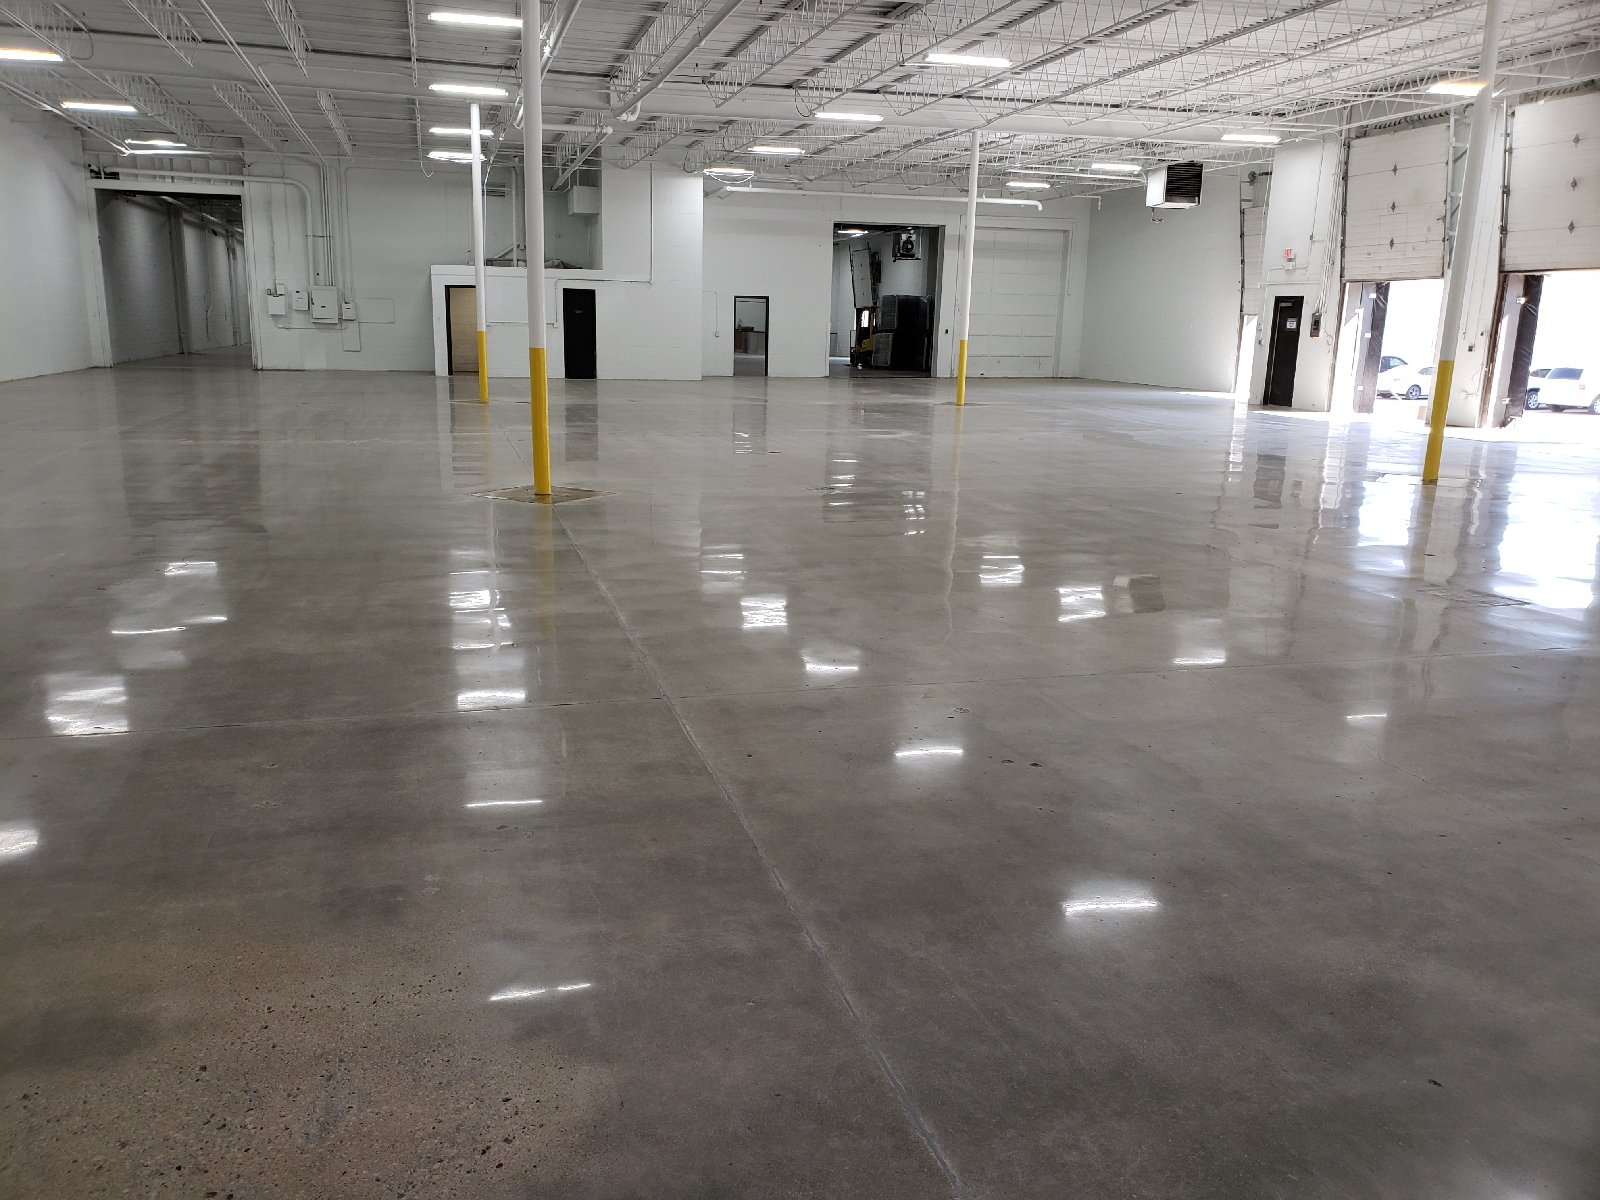 Mechanically Polished Concrete Floor With No Dye